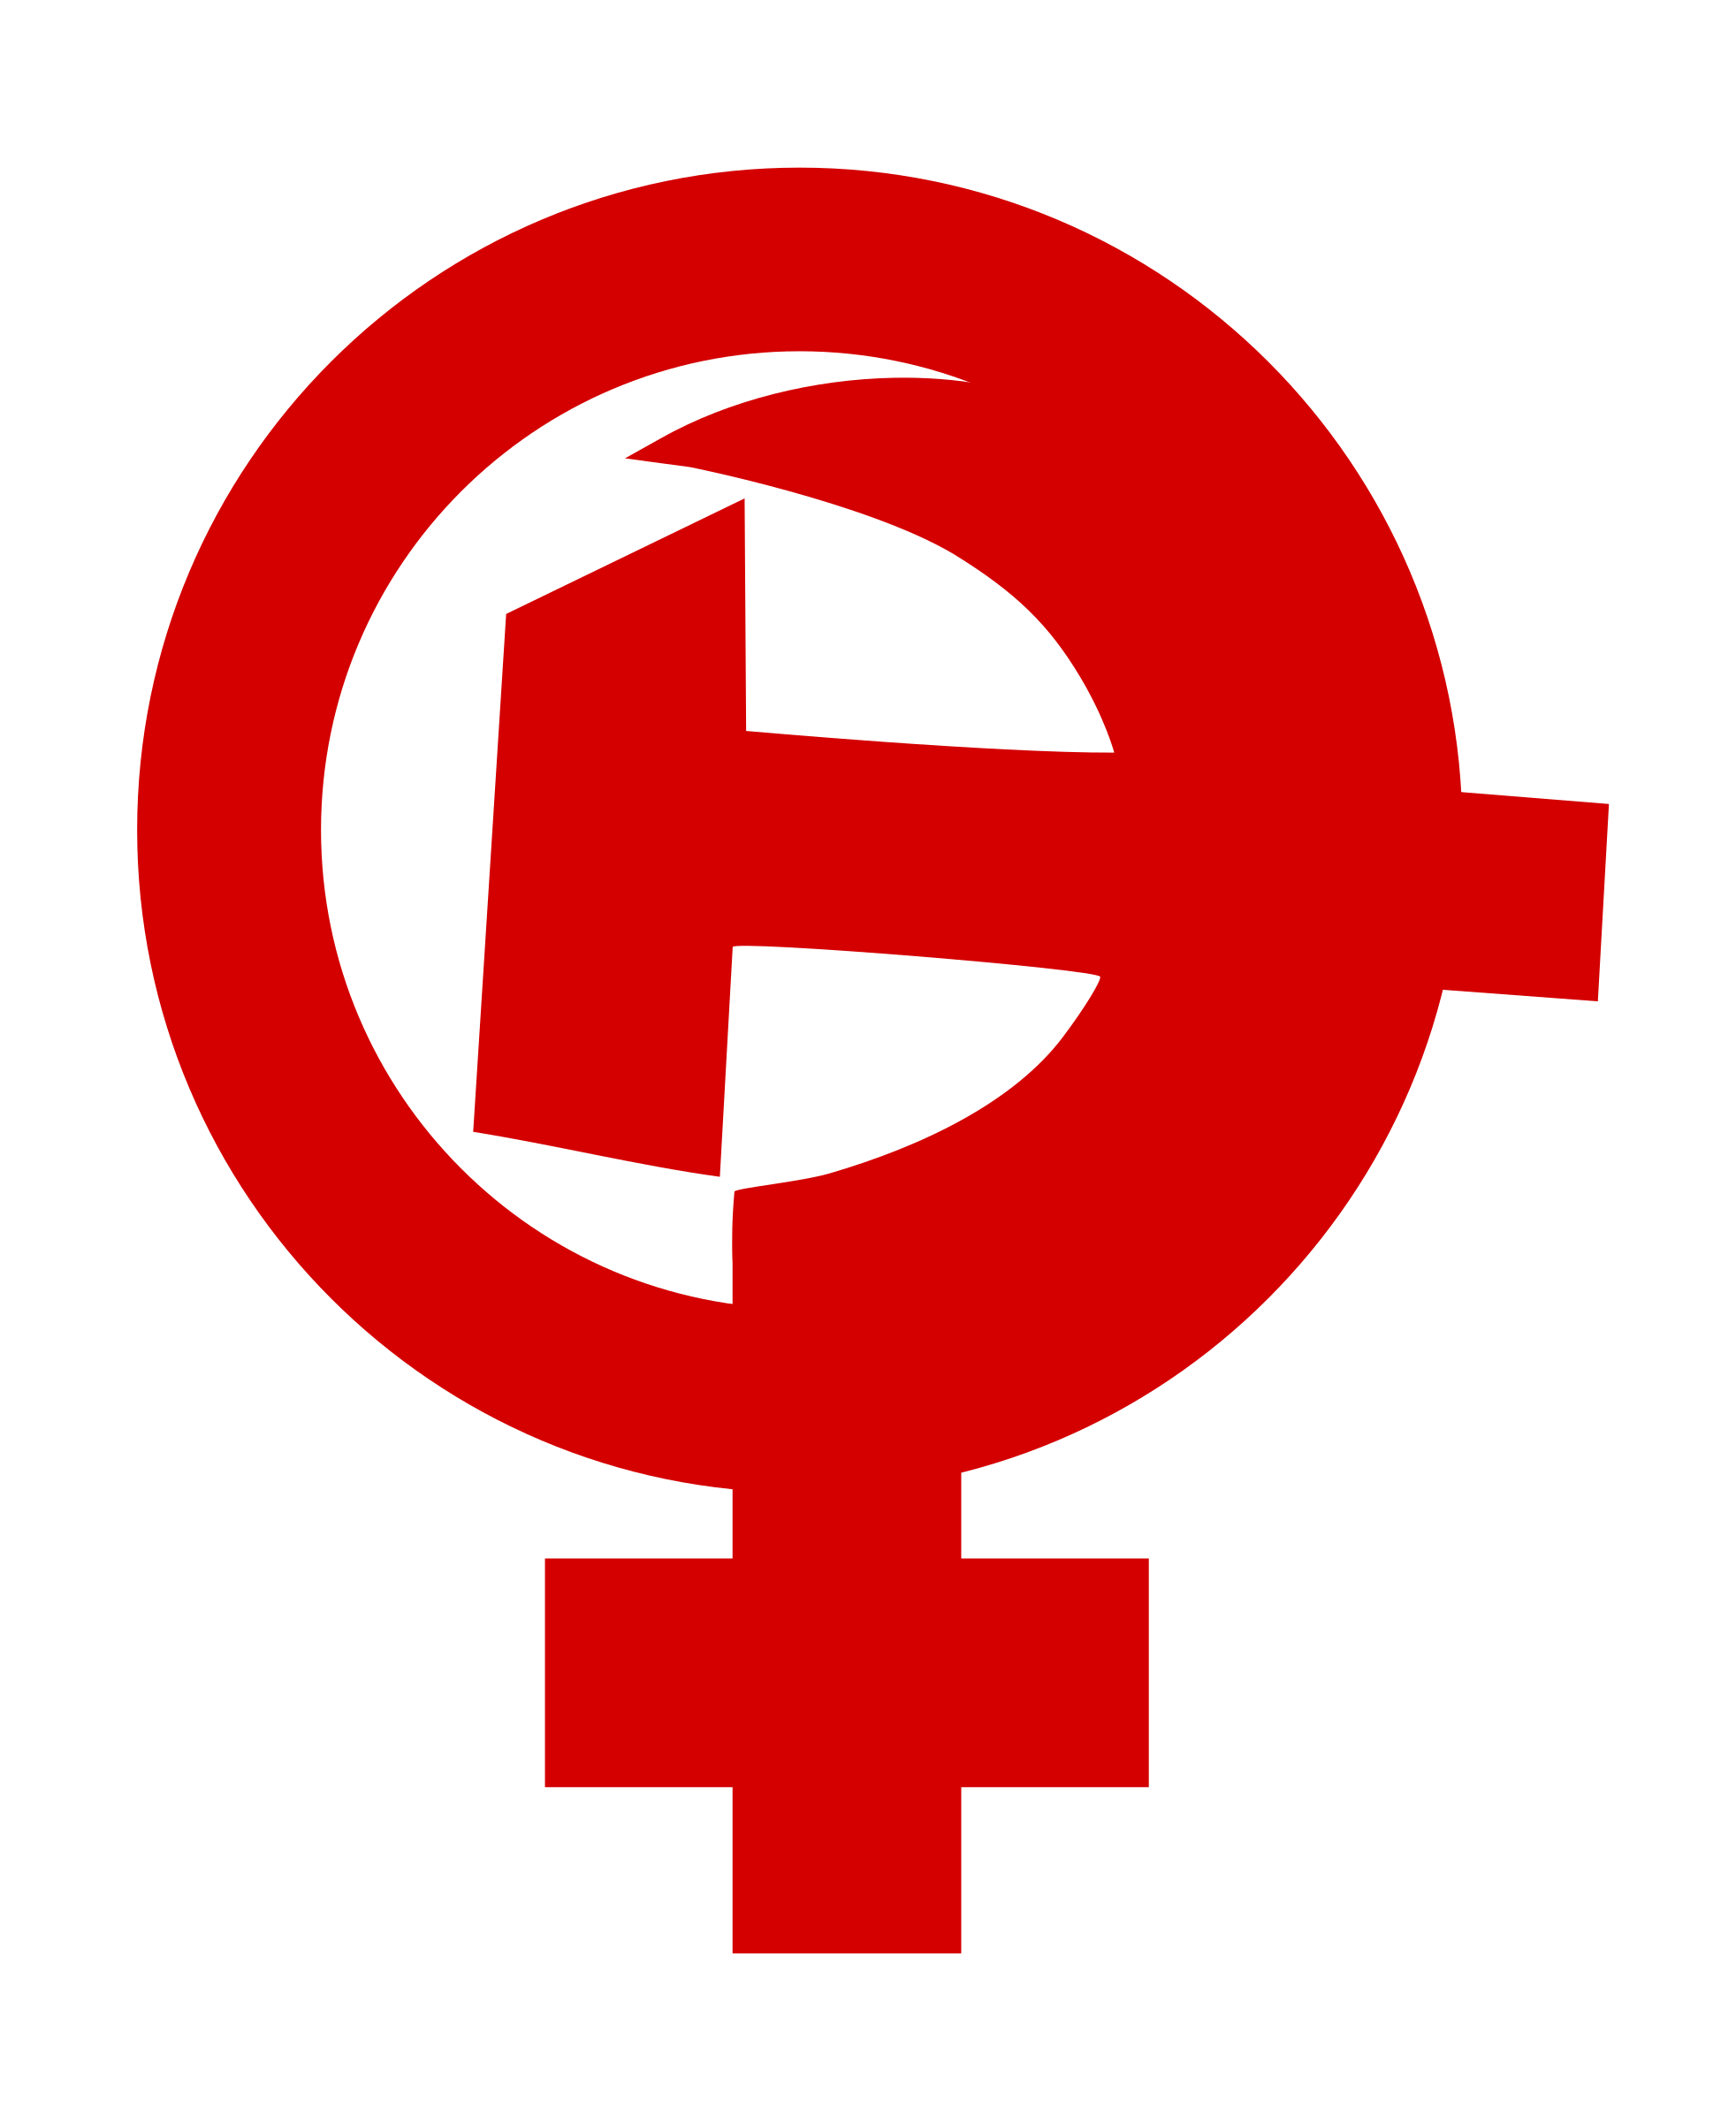 Feminism Hammer Sickle female symbol by worker